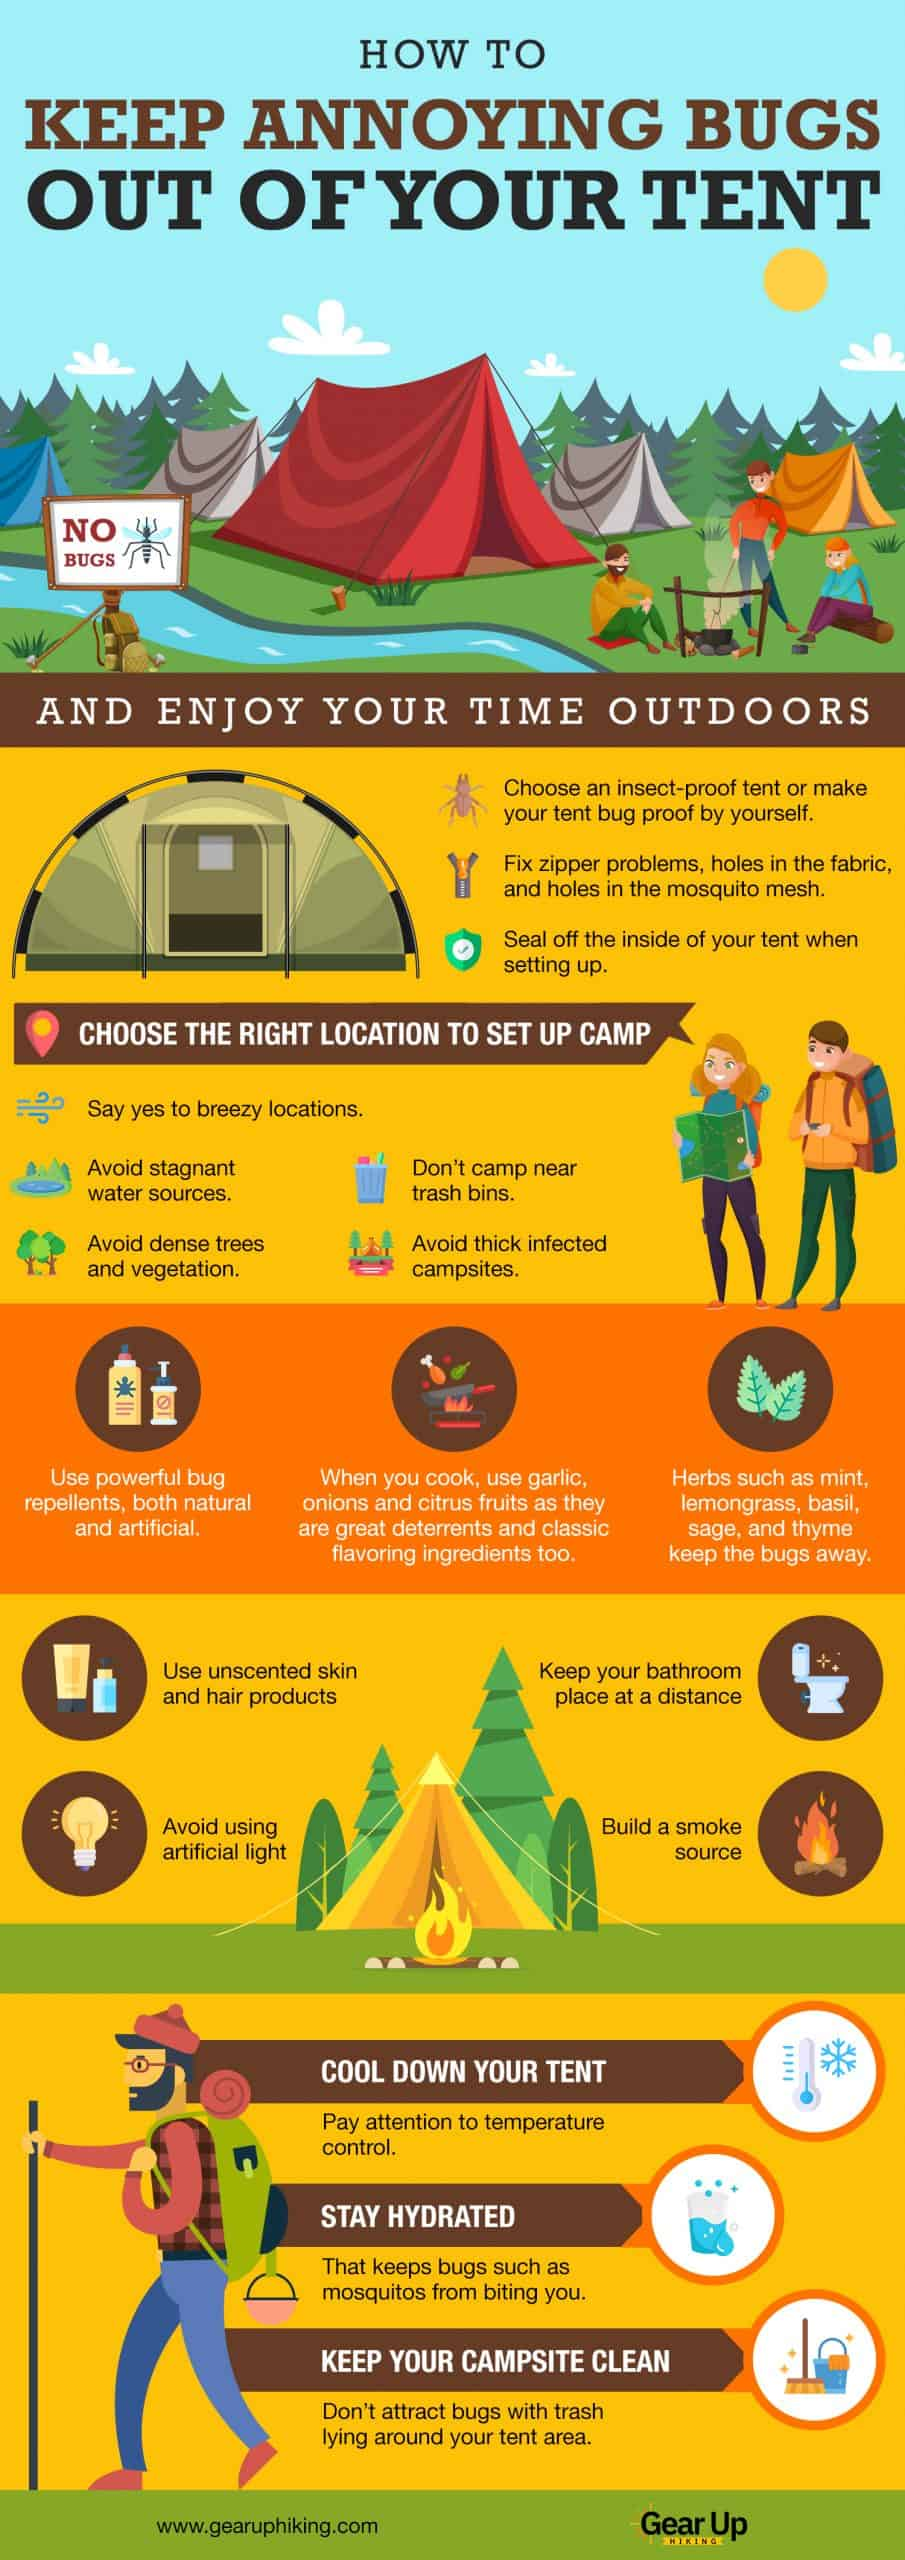 Keep Annoying Bugs Out Of Your Tent (1)